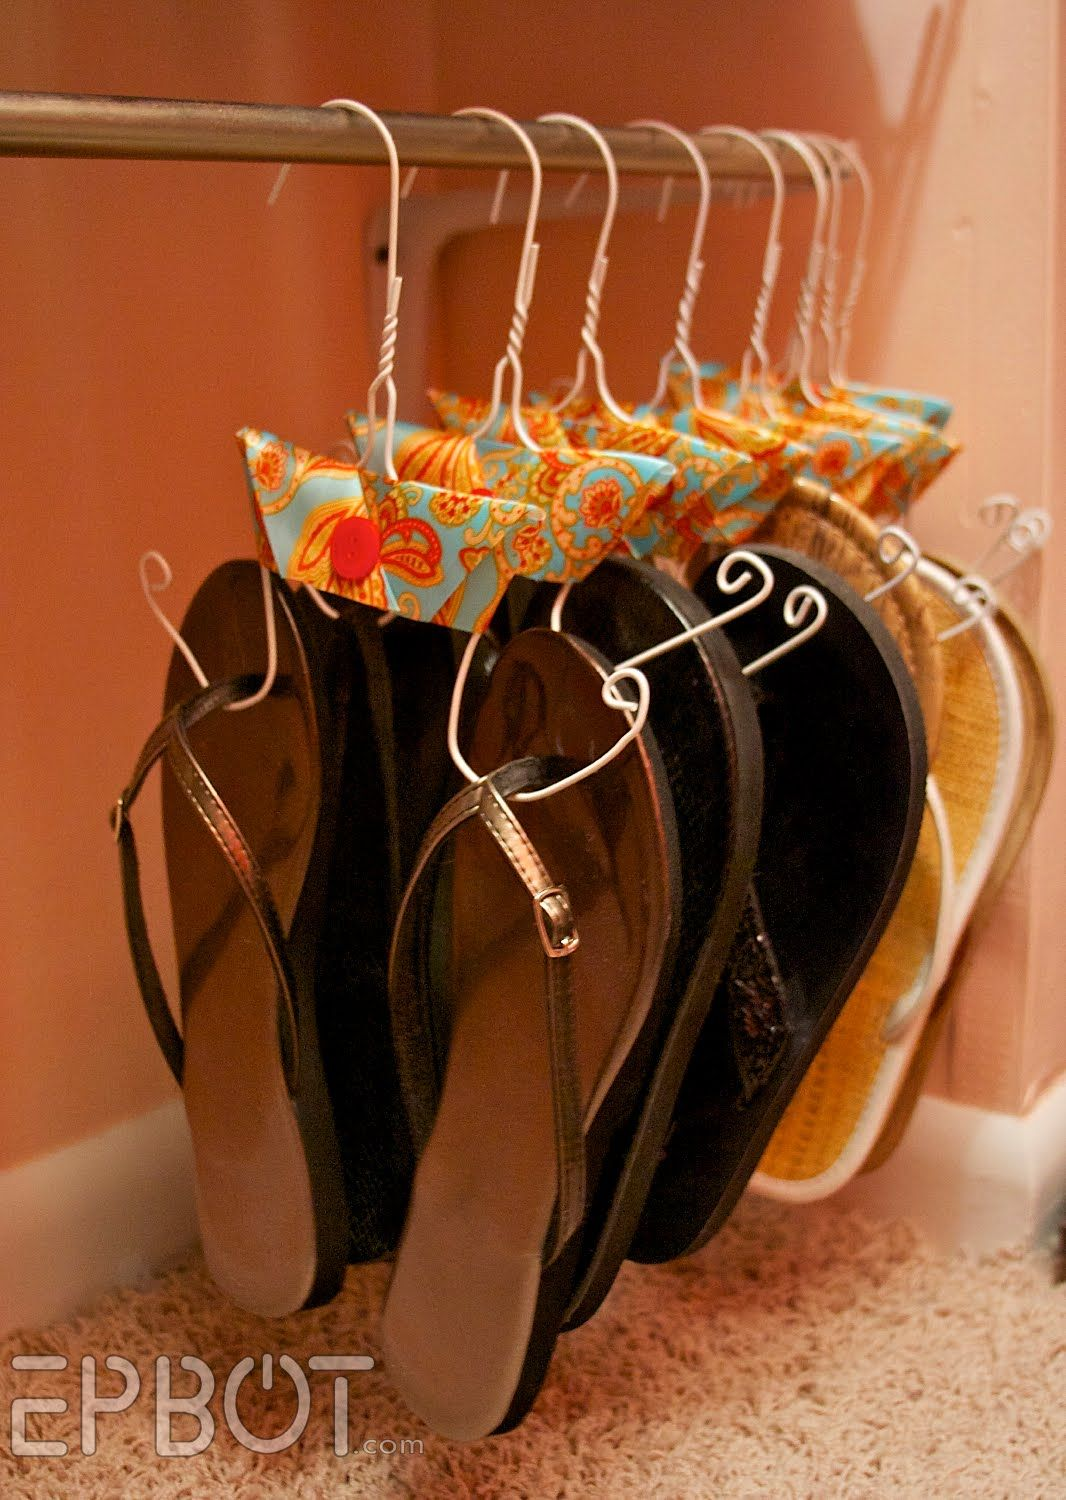 8af8c2b9e reCycle  wire hangers into these genius shoe hangers!